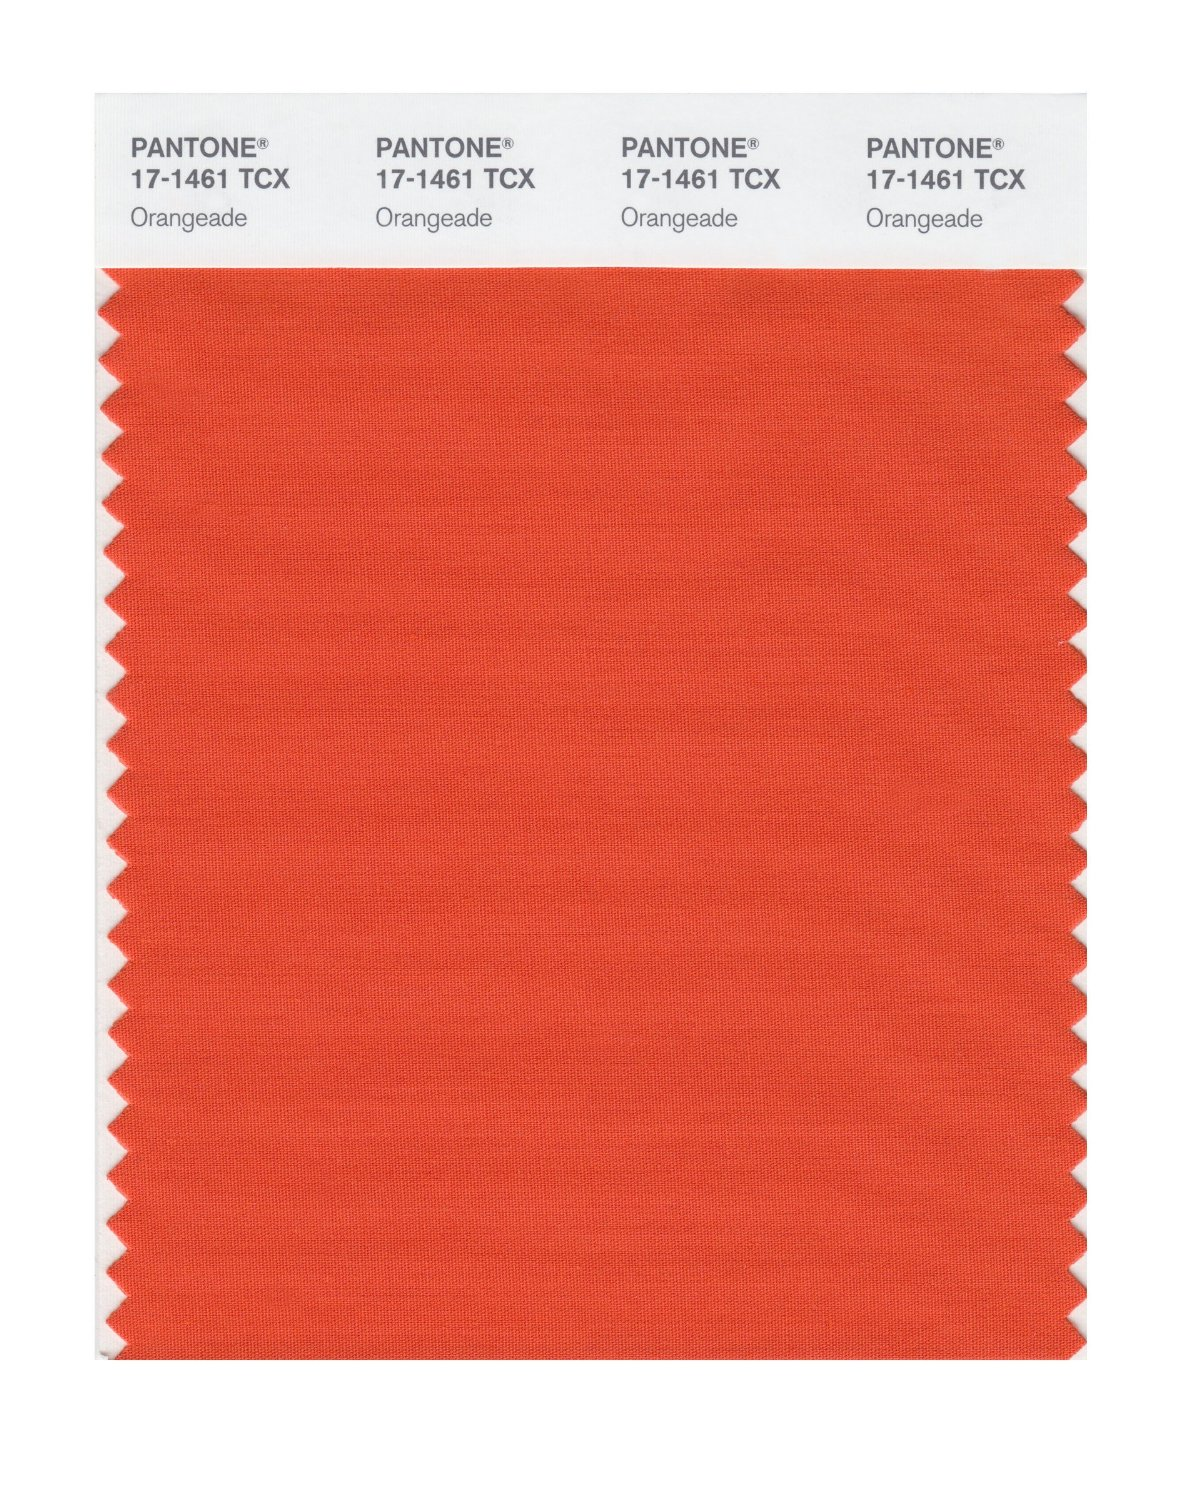 Pantone Smart Swatch 17-1461 Orangeade